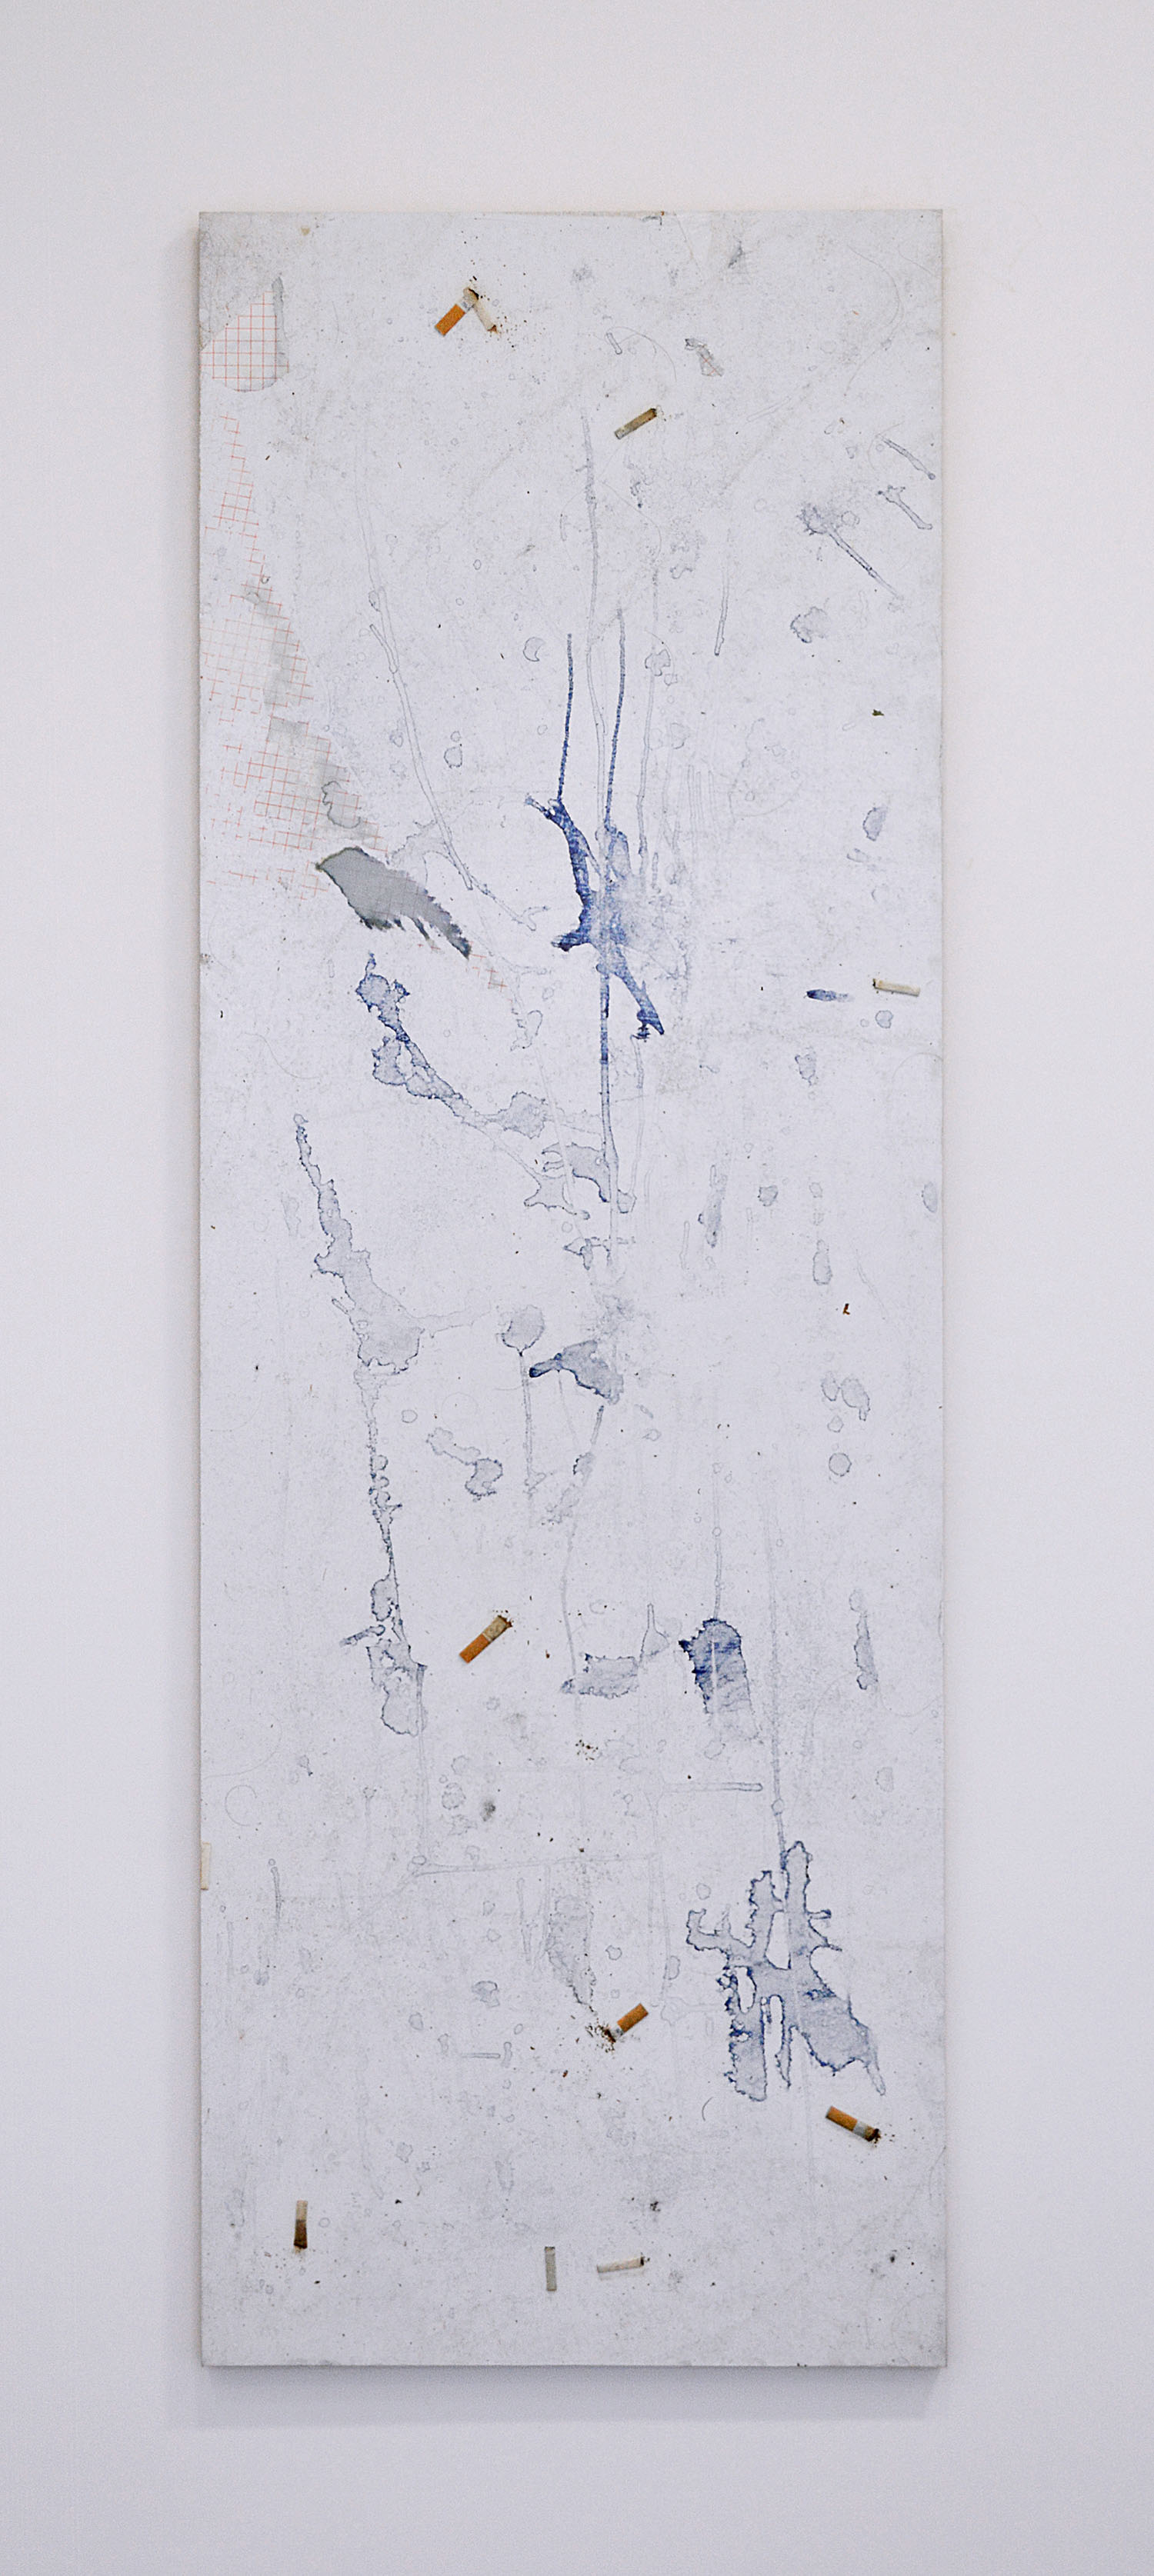 Jo-ey Tang   Document from Like An Intruder, The Speaker Removes His Cap, Patch 1.1,  2015  Adhesive plastic, cigarette butts, butterfly pea flower tea, mounted on aluminum and wood.  68.90 x 23.62 inches